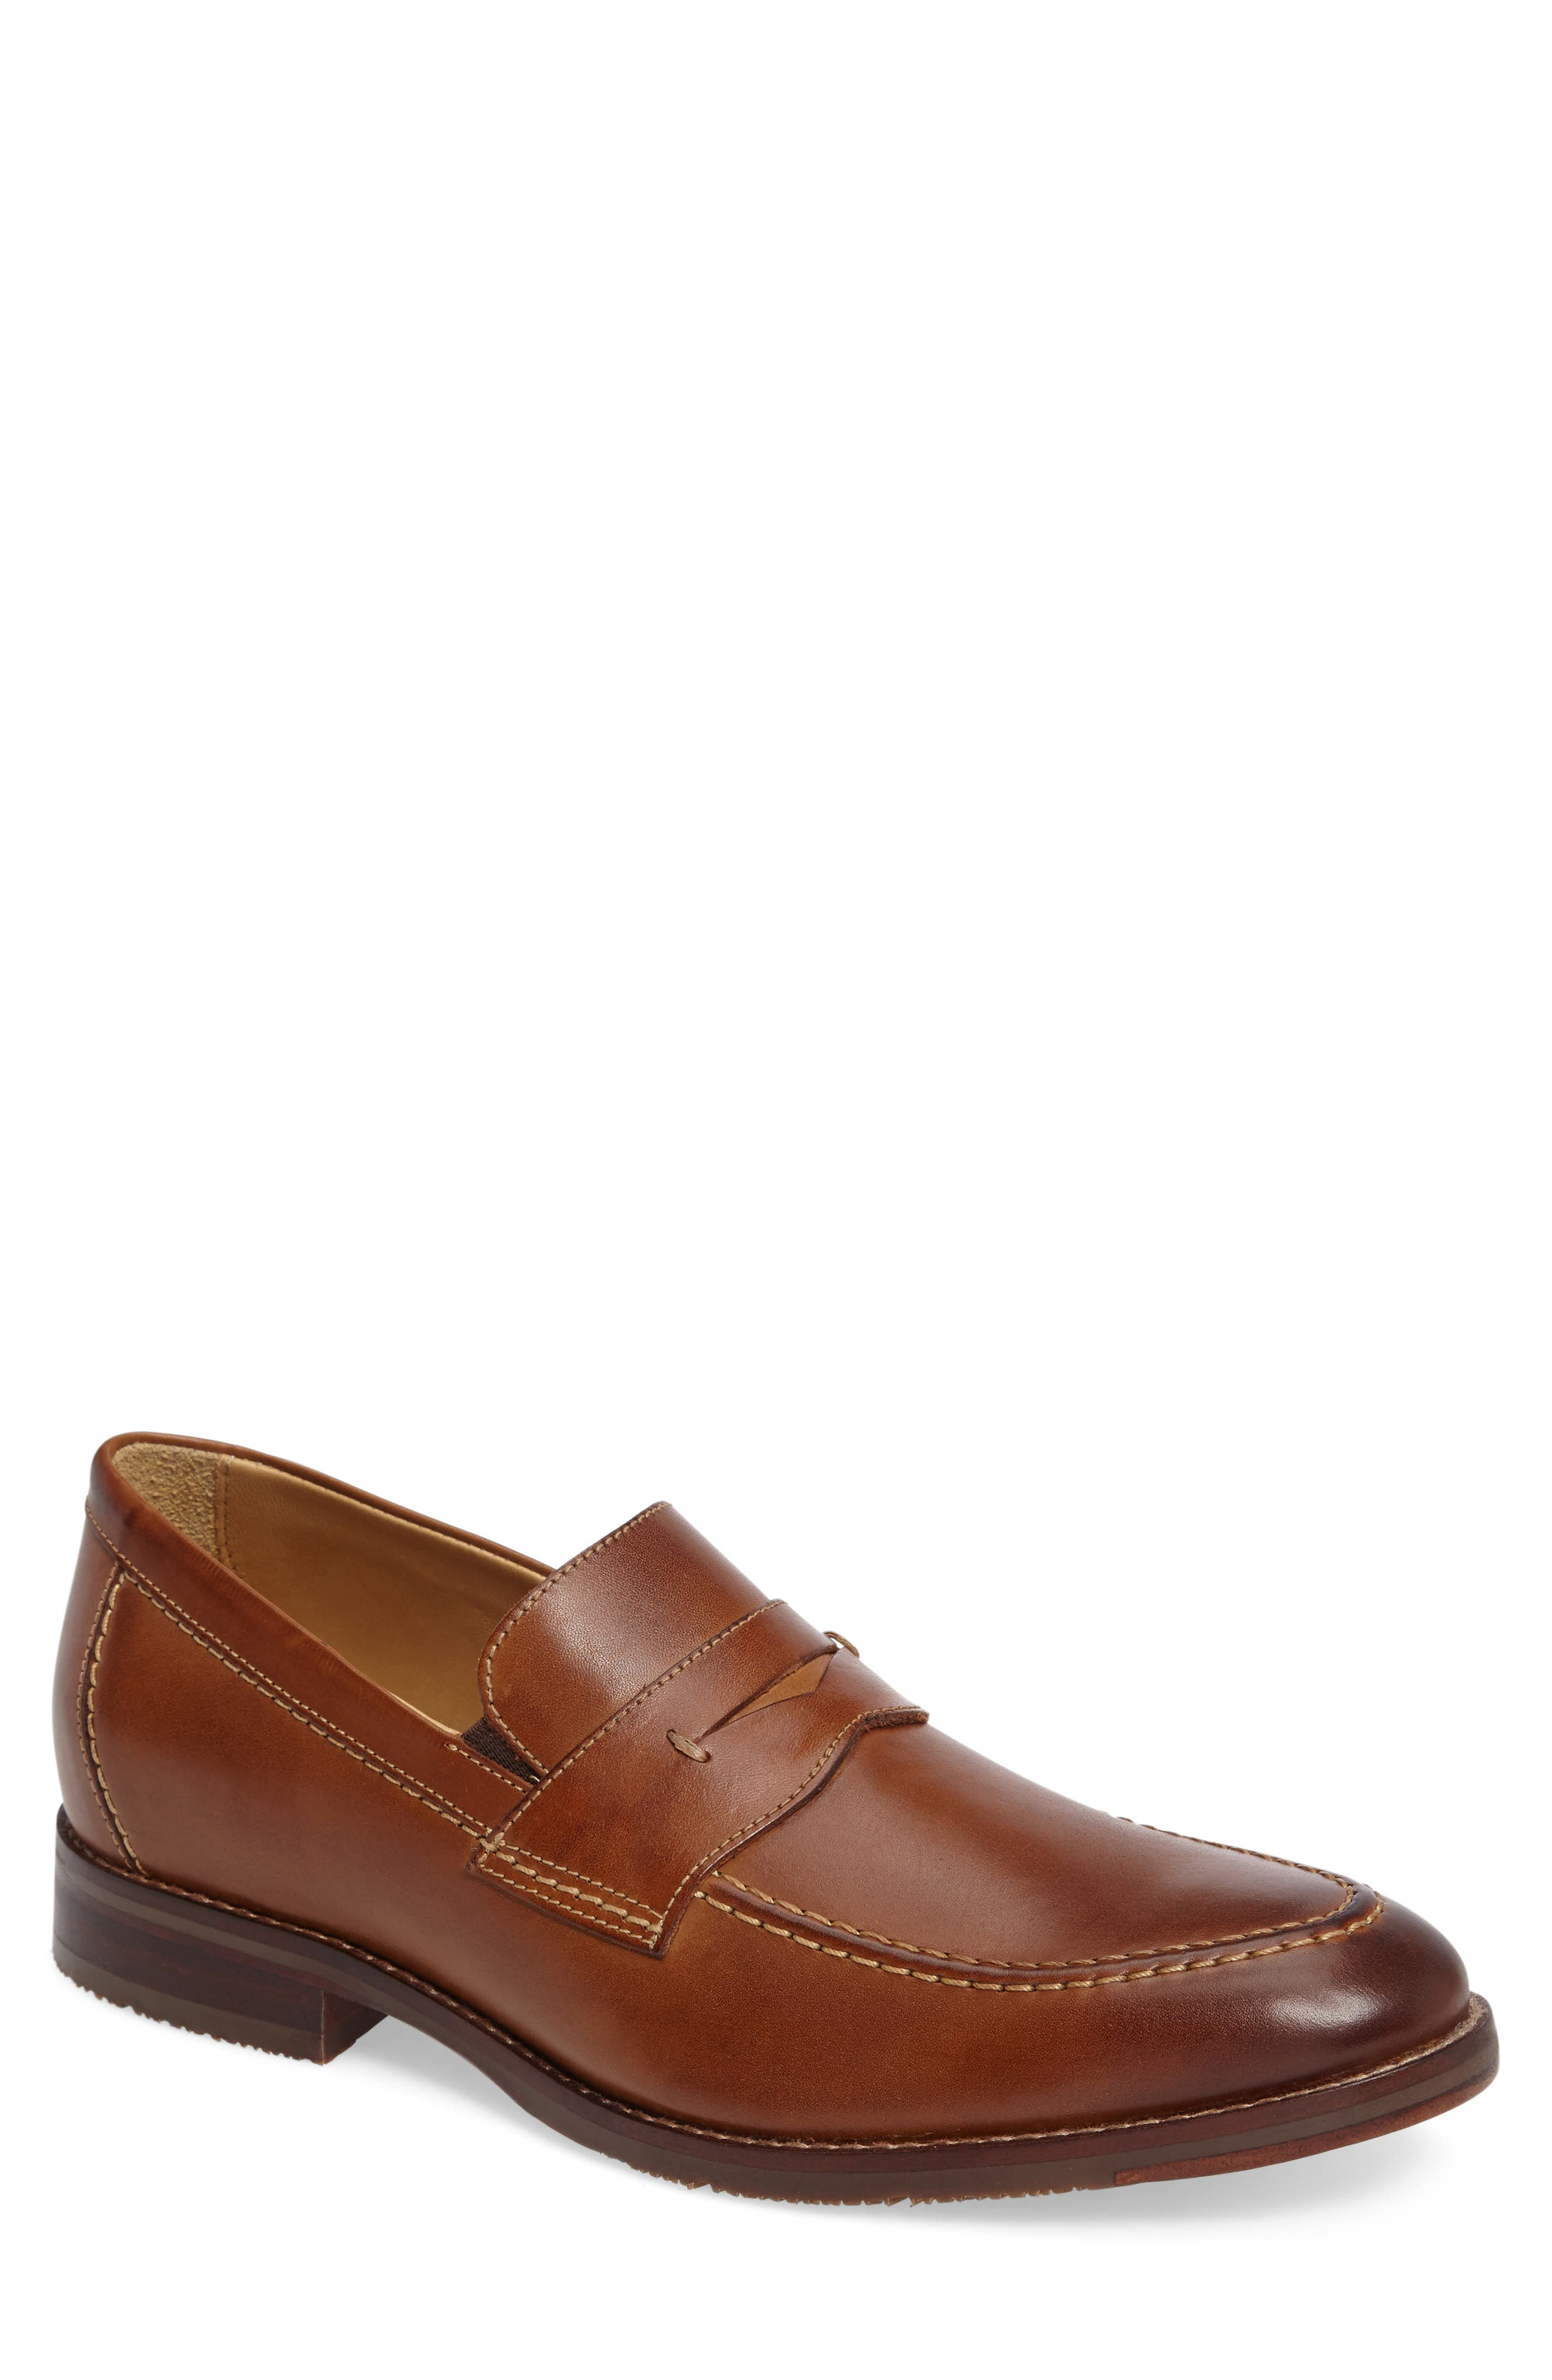 Johnston & Murphy Garner Penny Loafer- Brown